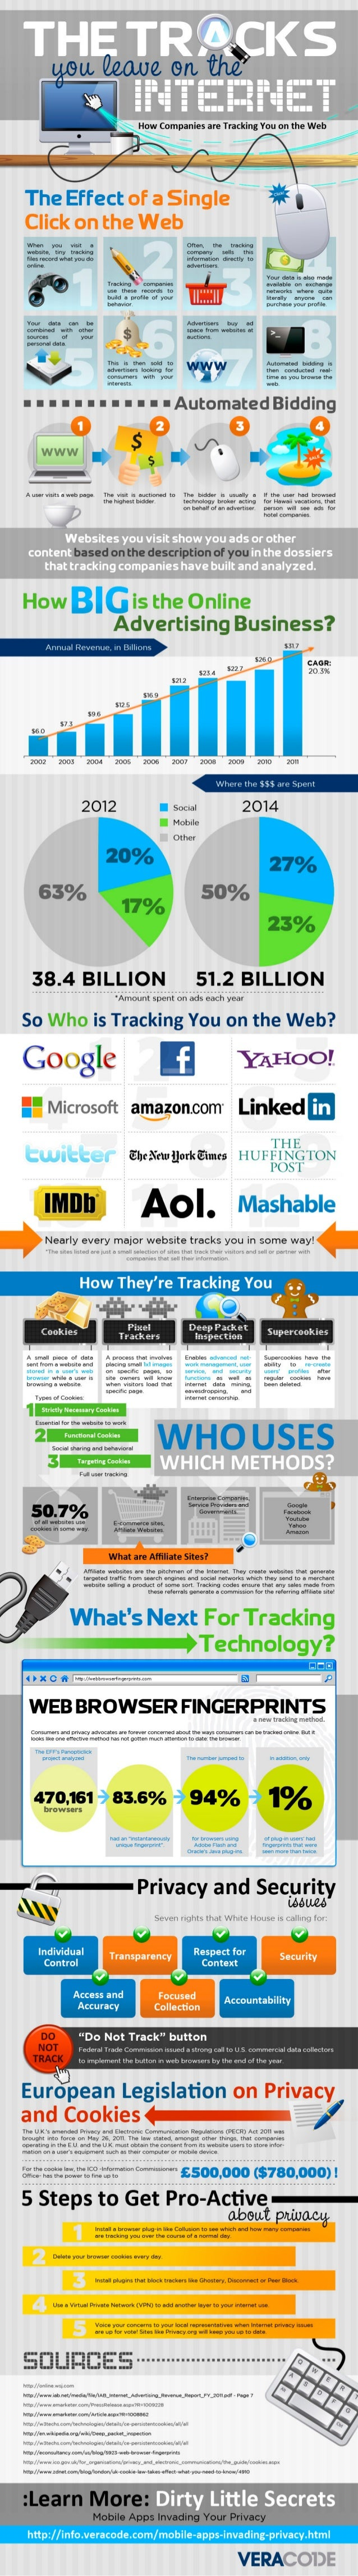 How Companies Track You on the Web- Infographic